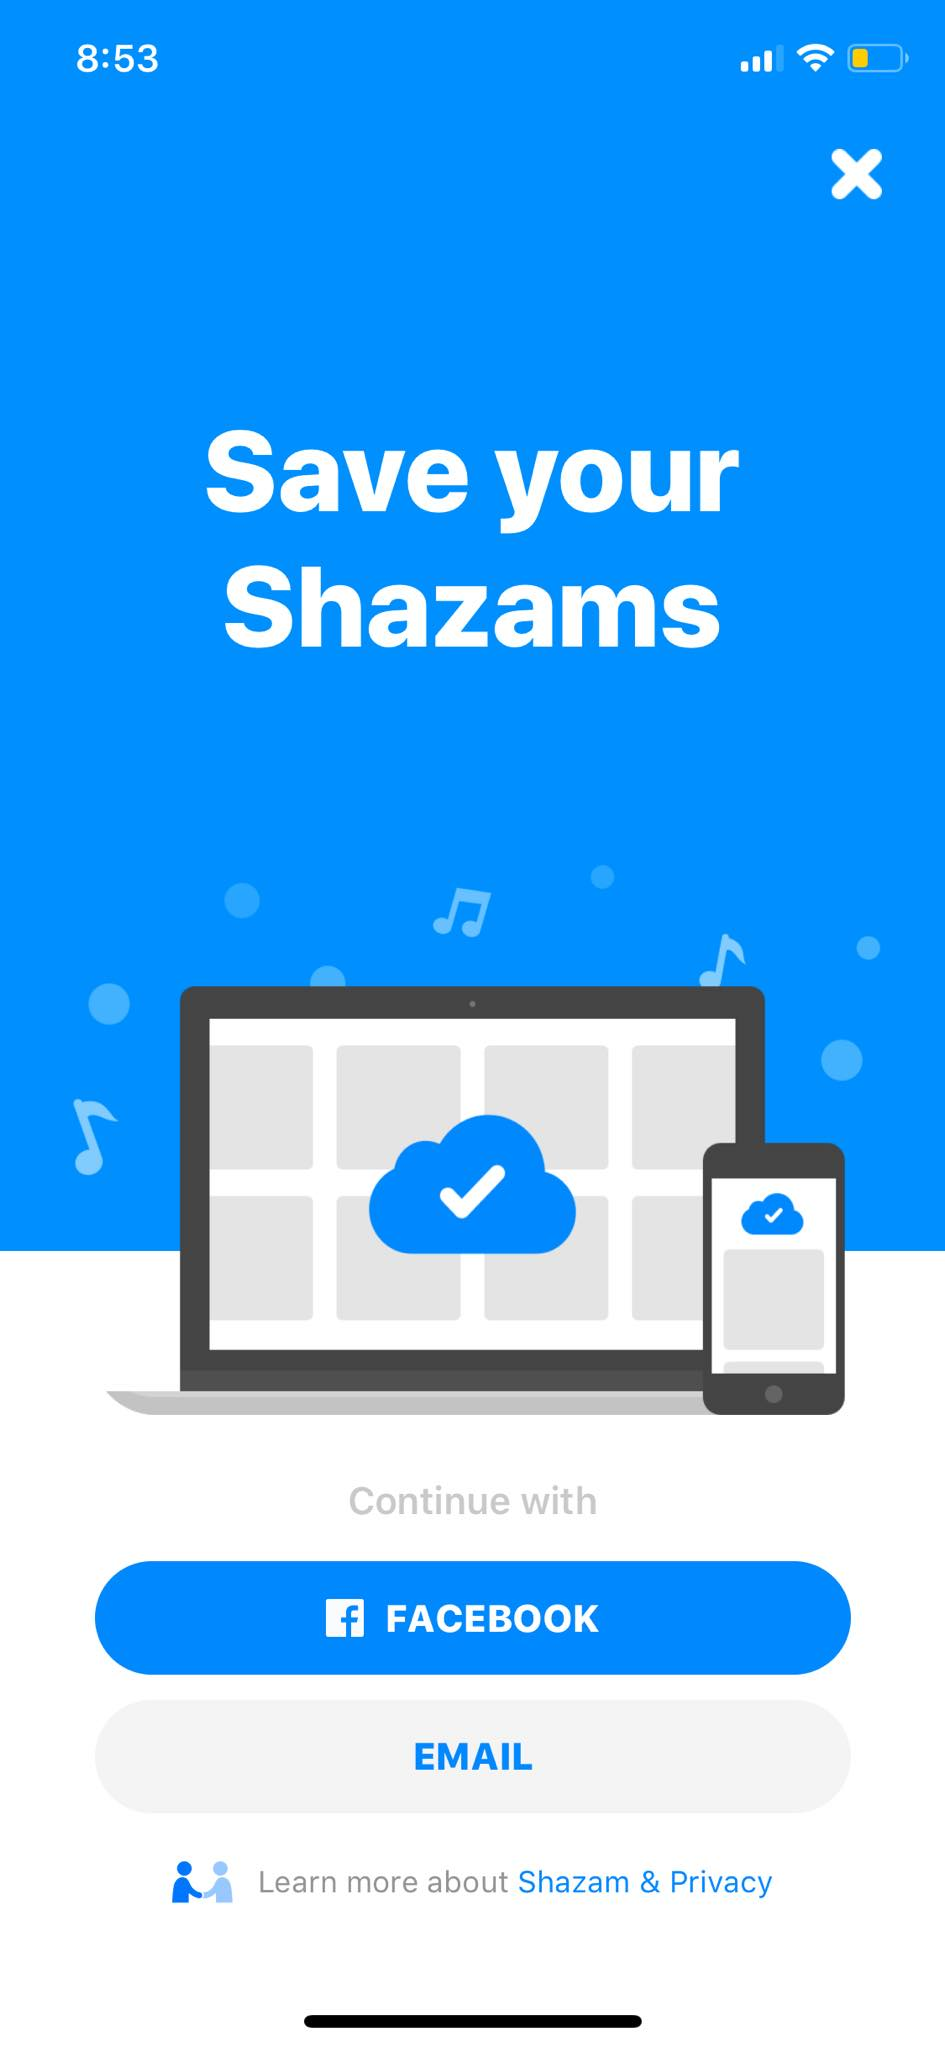 Save your Shazam on iOS by Shazam from UIGarage